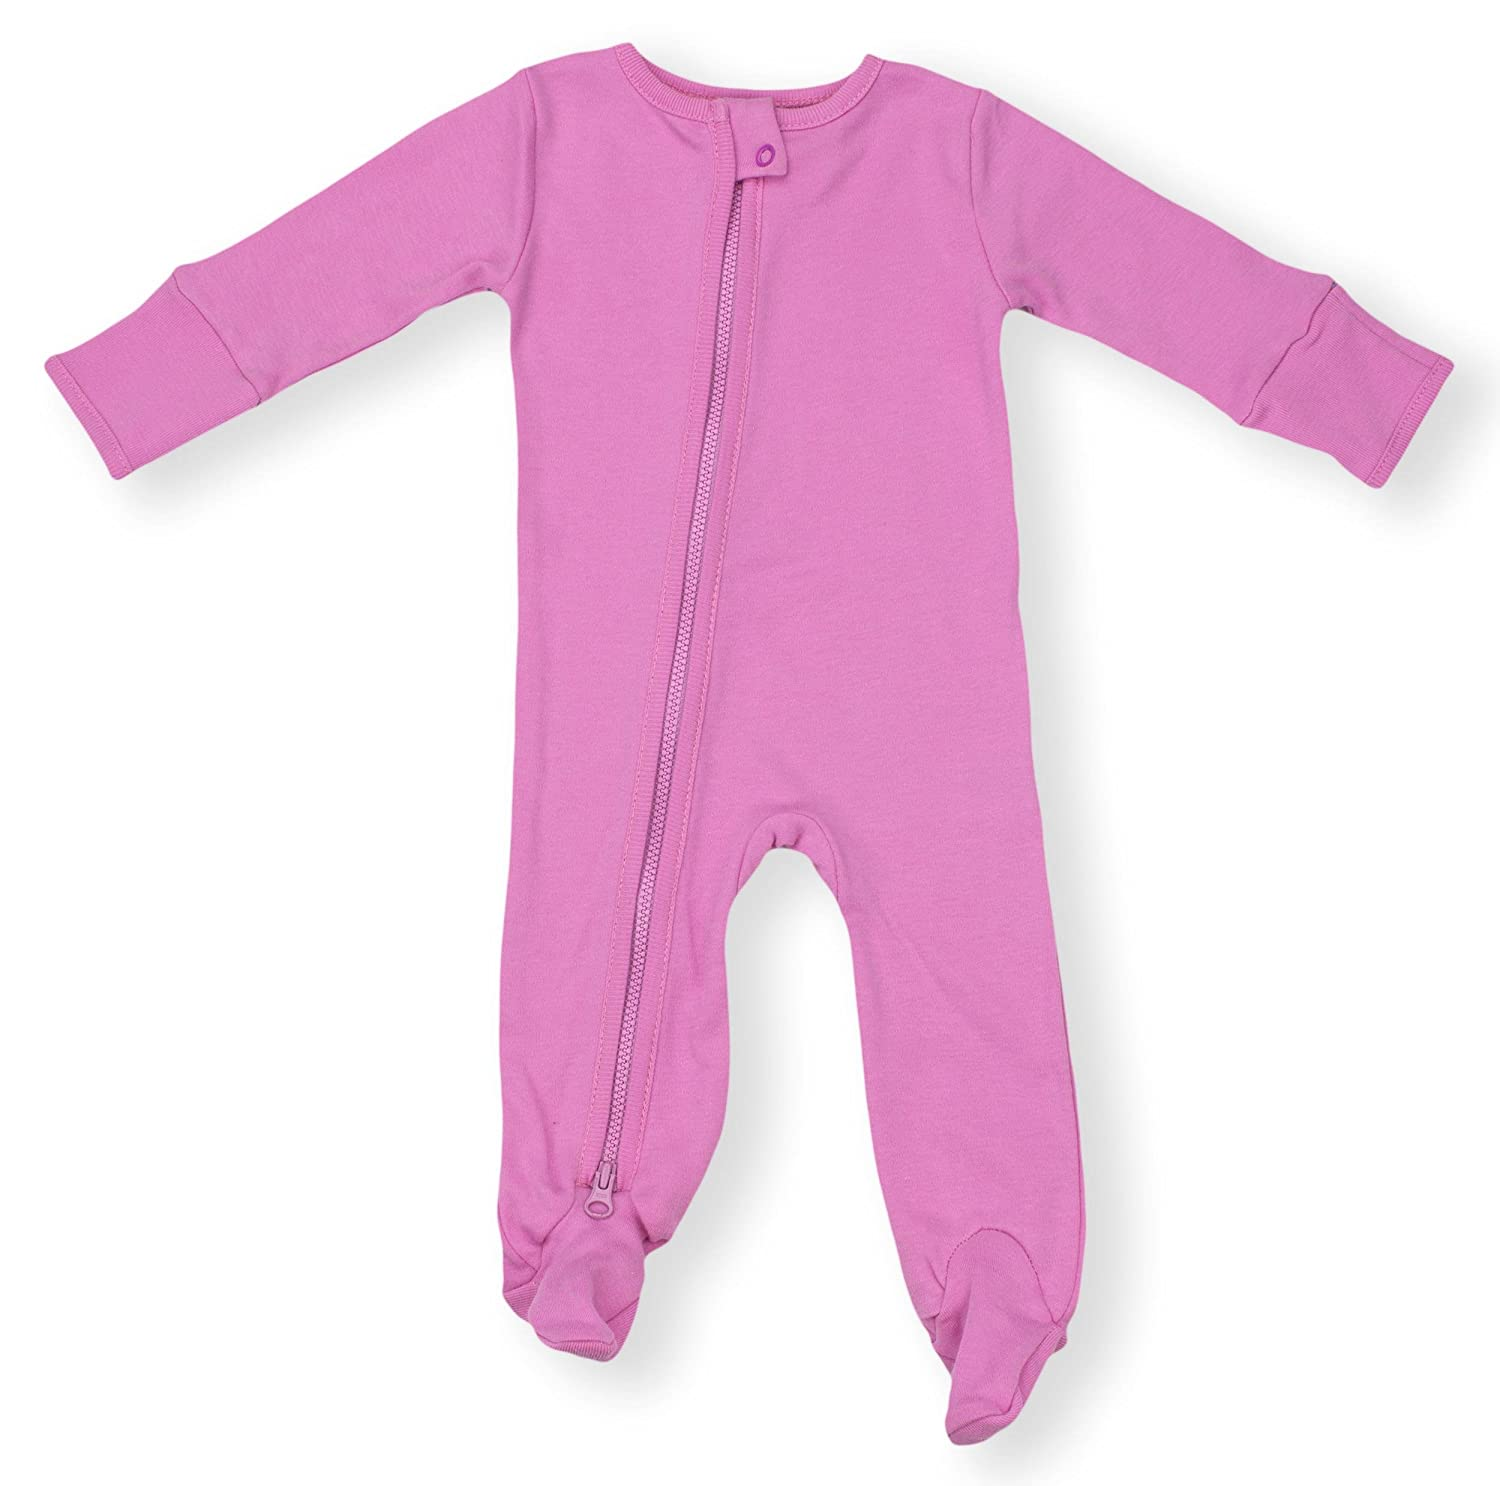 Earthy Organic Baby Sleeper 2-Way Zipper Pajamas Boy Girl (7 Sizes: NB-24M) 100% Organic Cotton